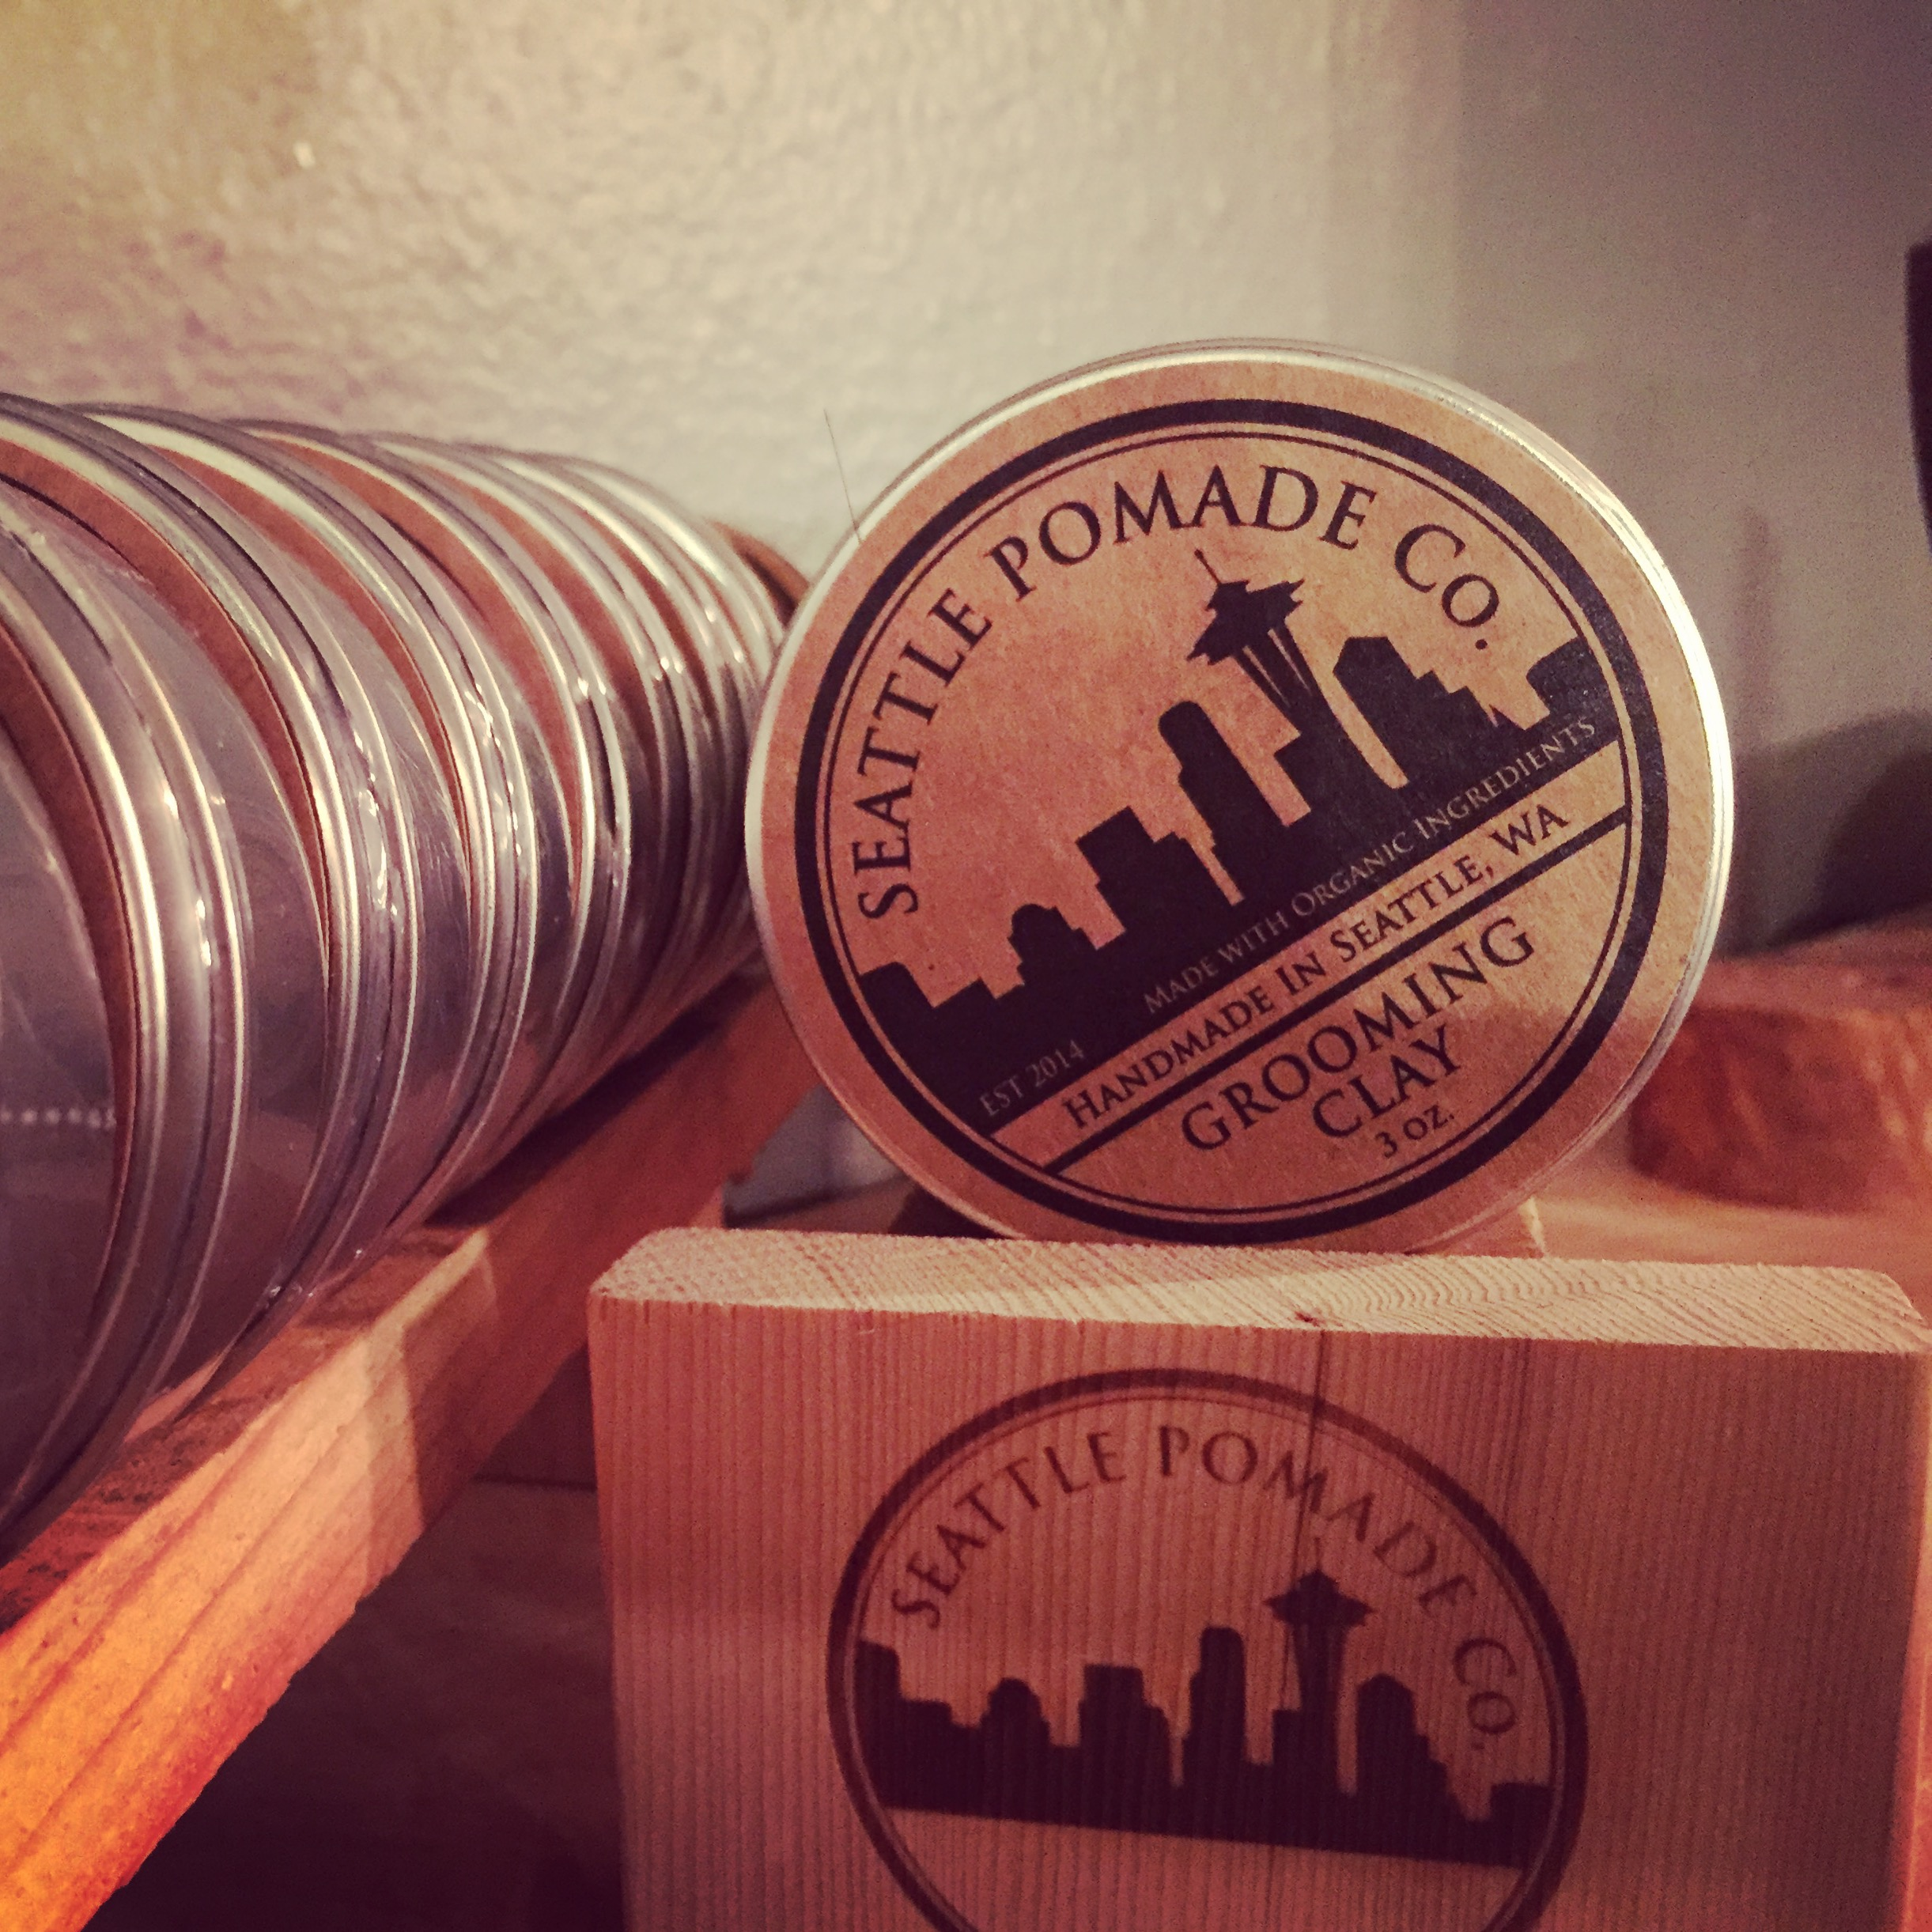 SEATTLE POMADE      CO. - Hand crafted from organic ingredients,Seattle Pomade Co.Grooming Clay,Pomade, Beard Oil, and Salt Spray, shape and perfect any cut. Light, natural fragrances with bold hold and workability for a lasting, natural looking style.